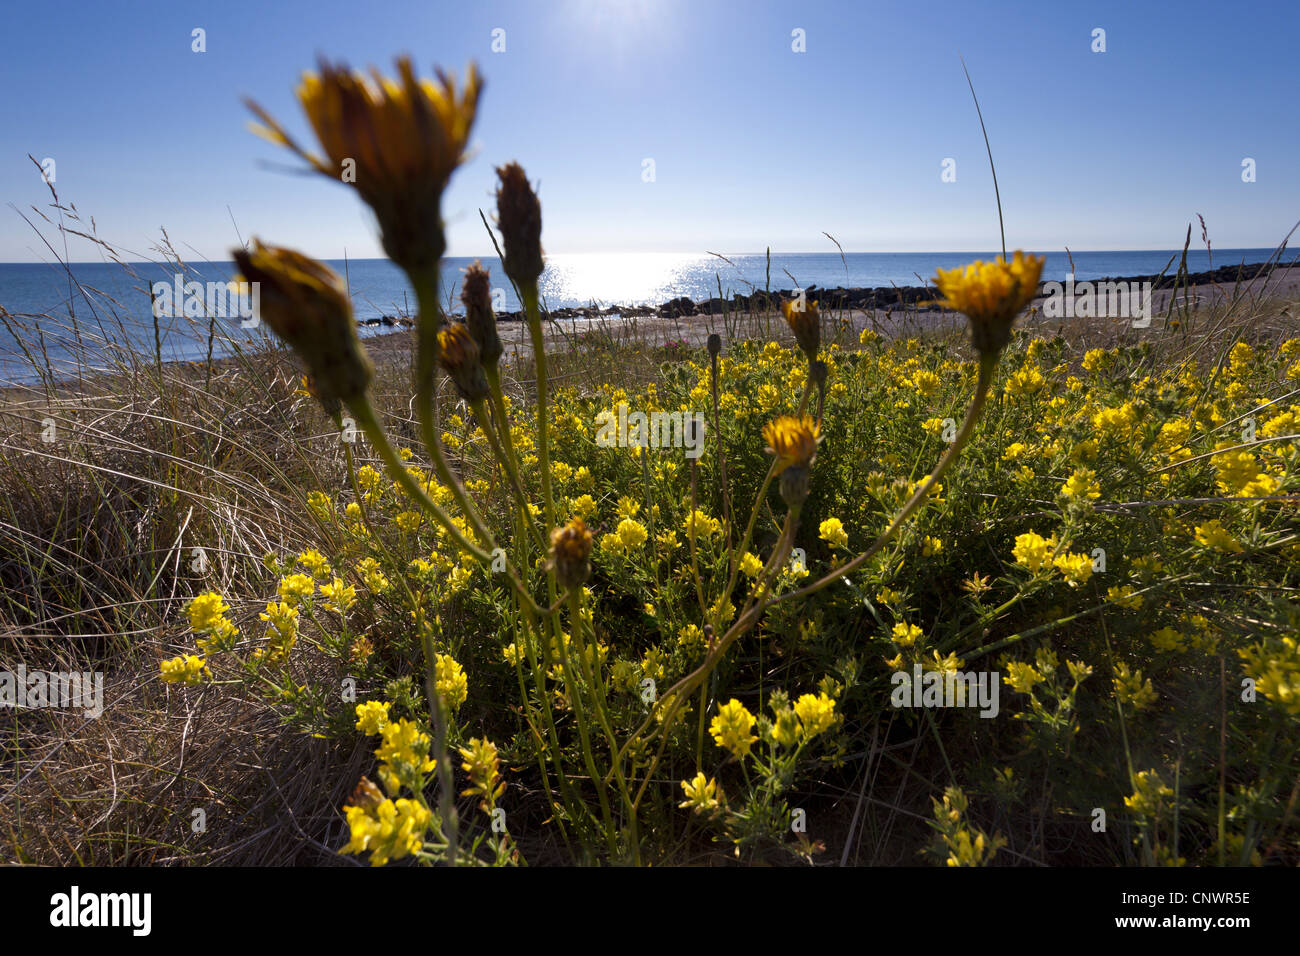 Sickle alfalfa sickle medick yellow lucerne yellow flowered stock sickle alfalfa sickle medick yellow lucerne yellow flowered alfalfa medicago falcata medicago sativa ssp falcata blooming at the coast together with mightylinksfo